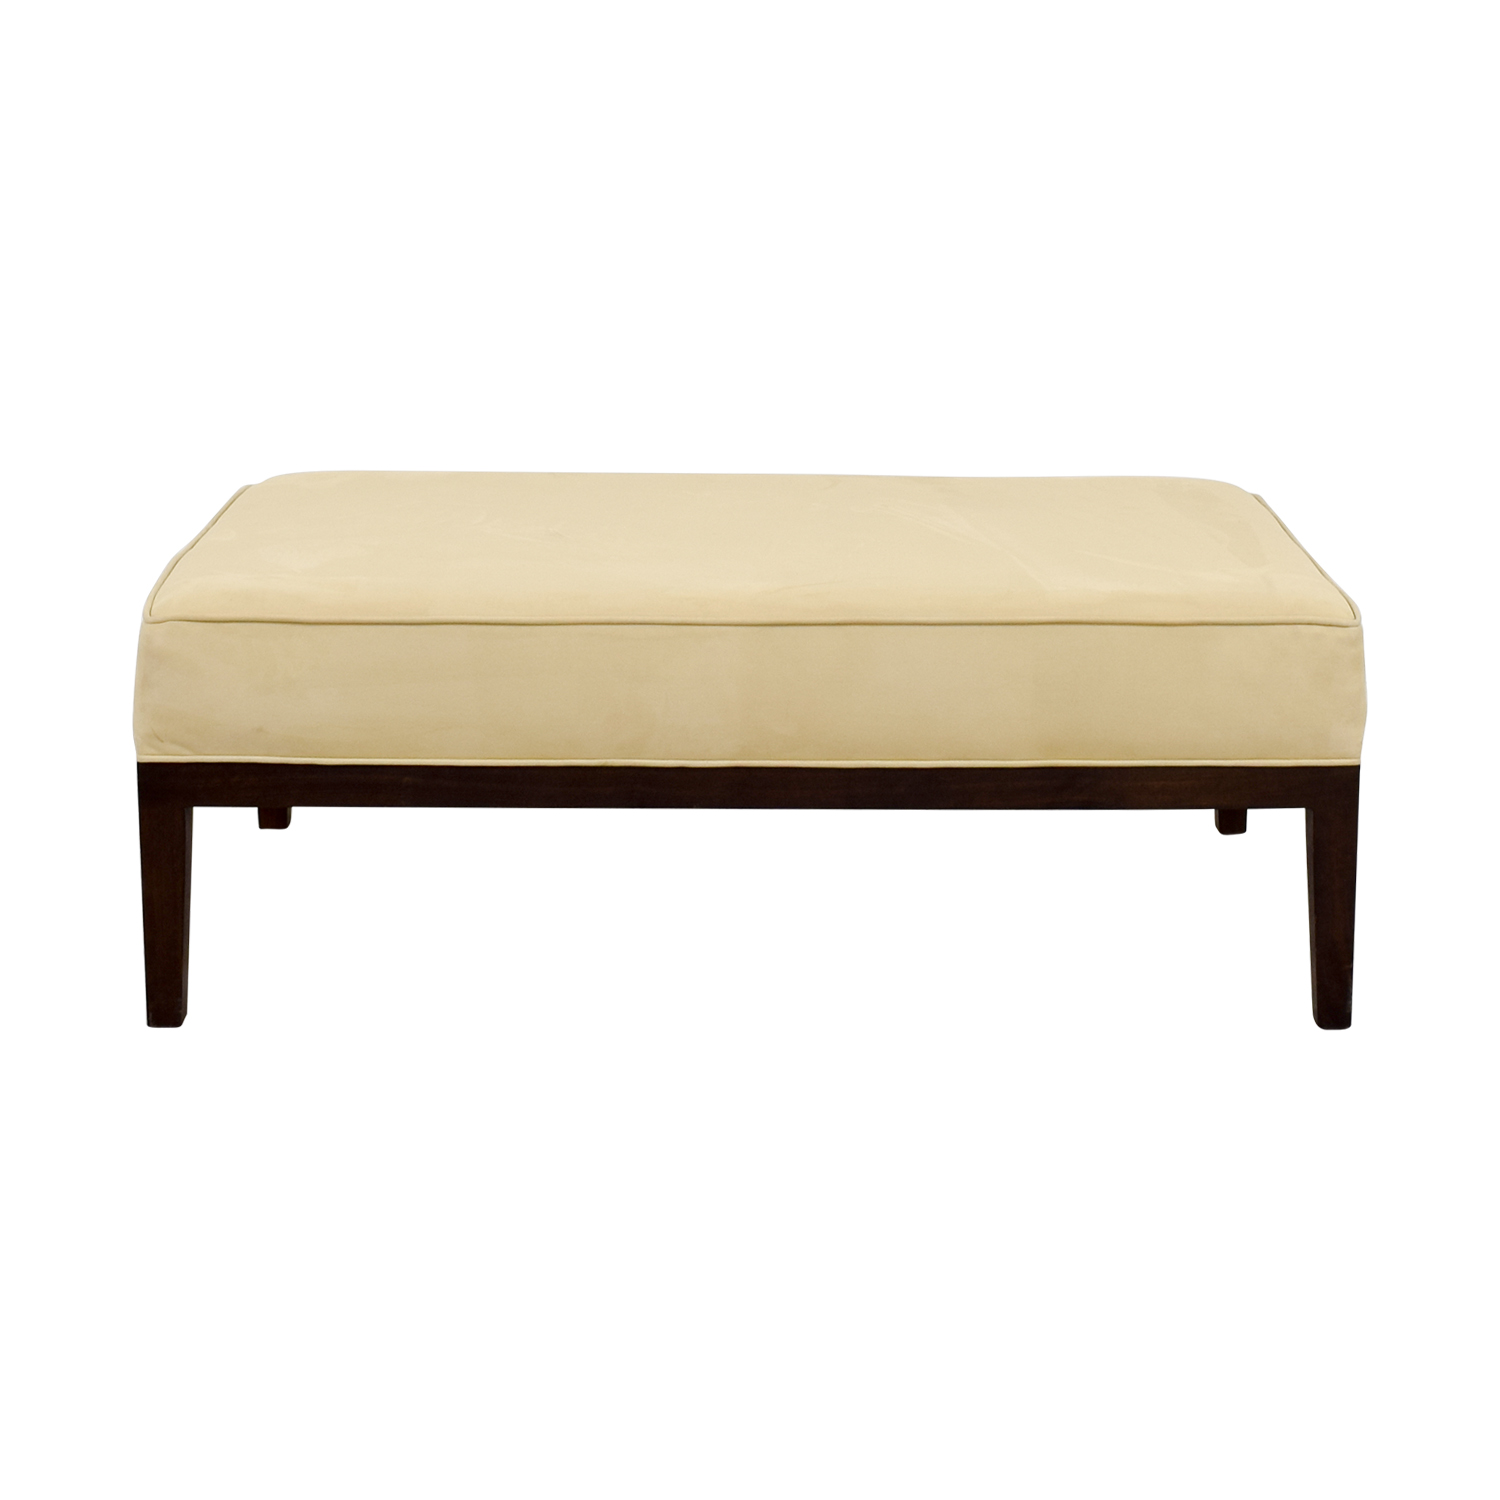 Tan Suede Bench Ottoman for sale